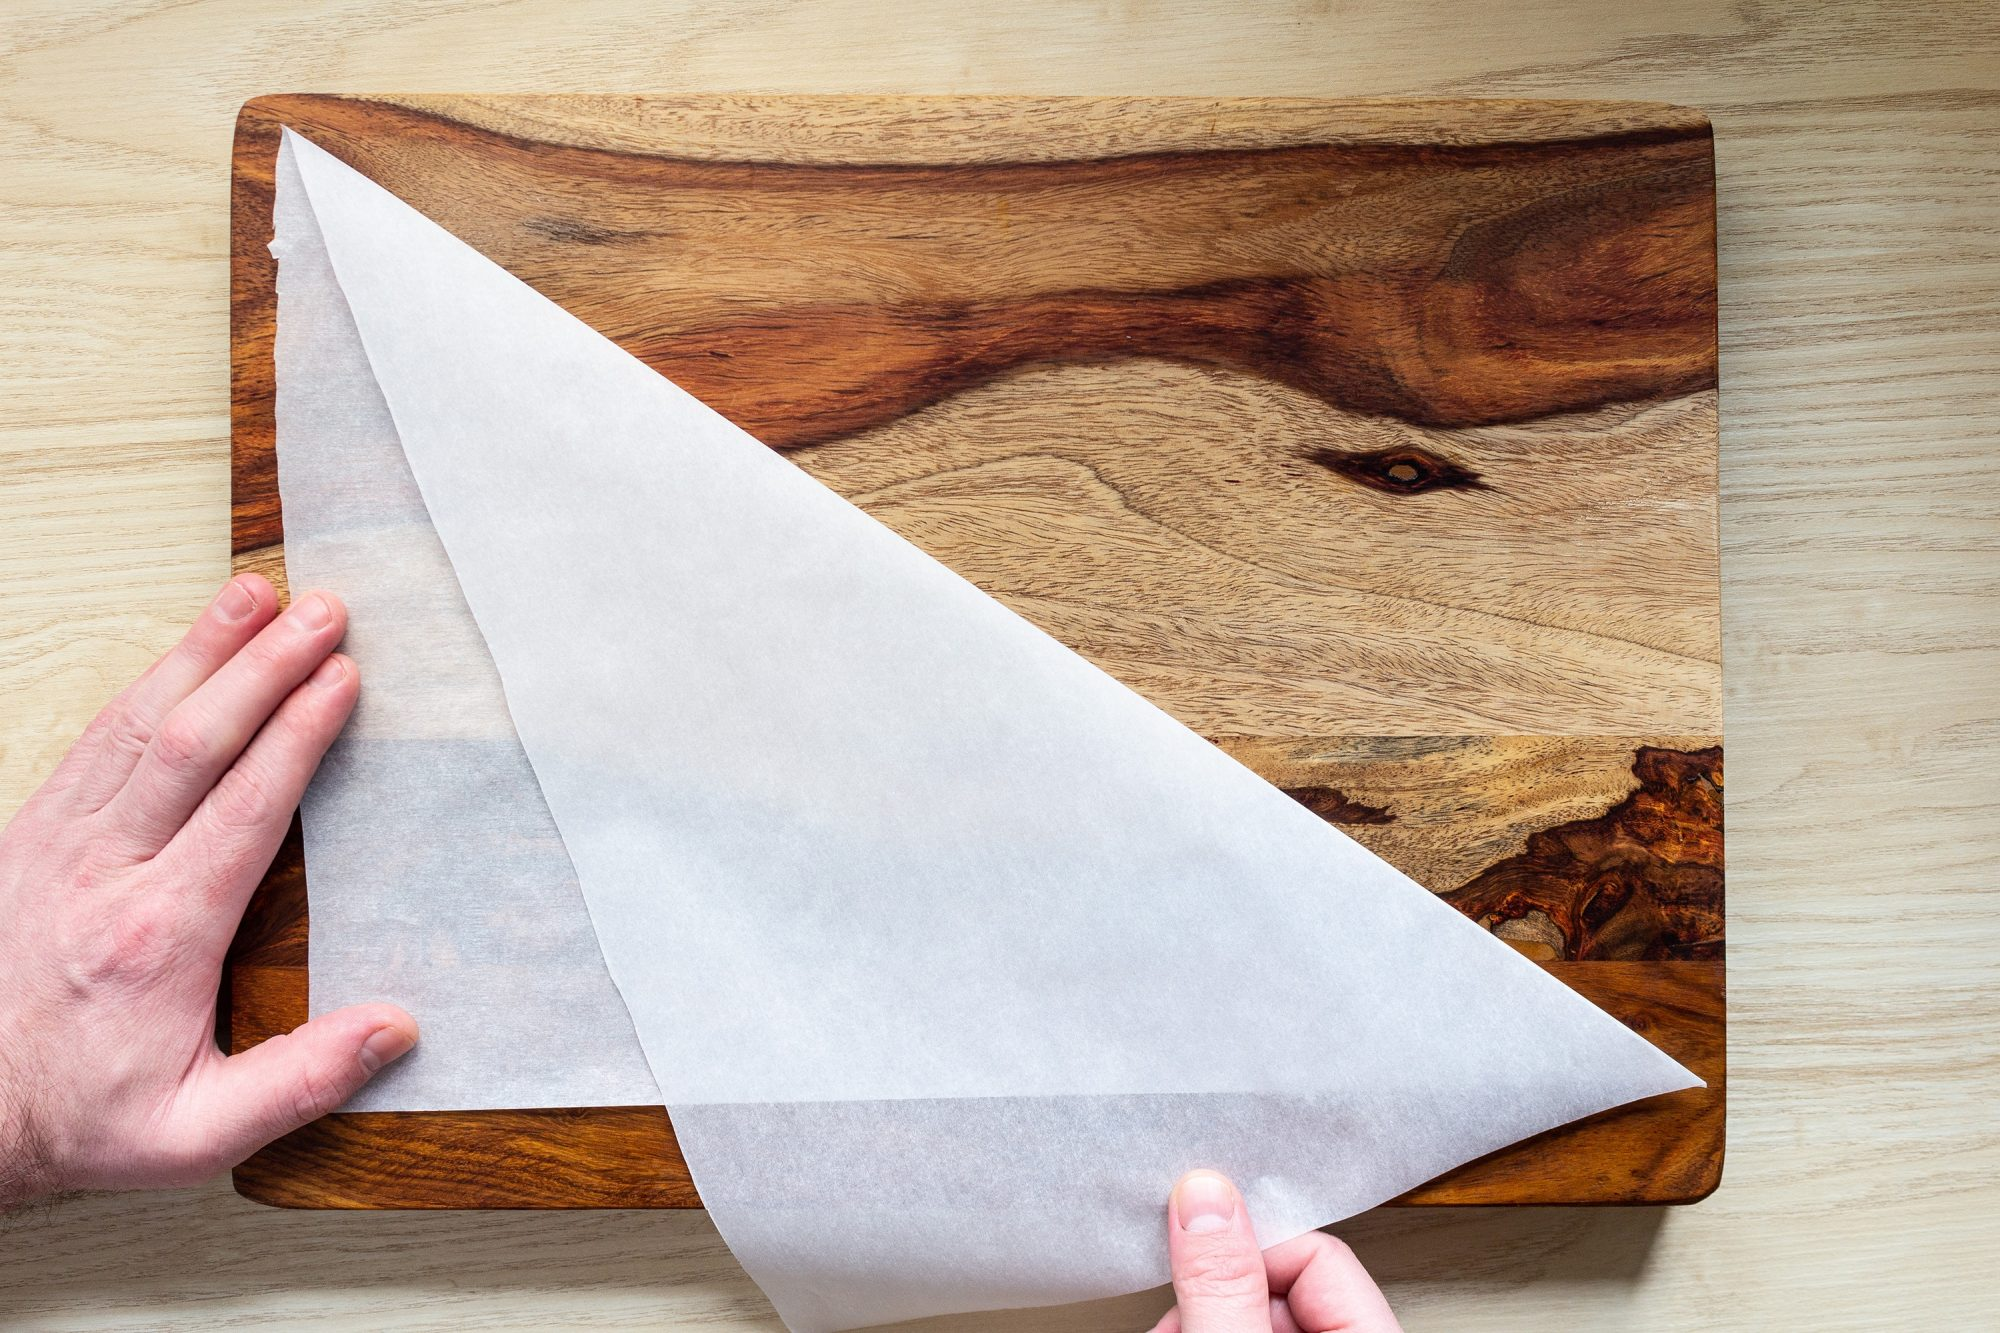 folding parchment rectangle into two triangles